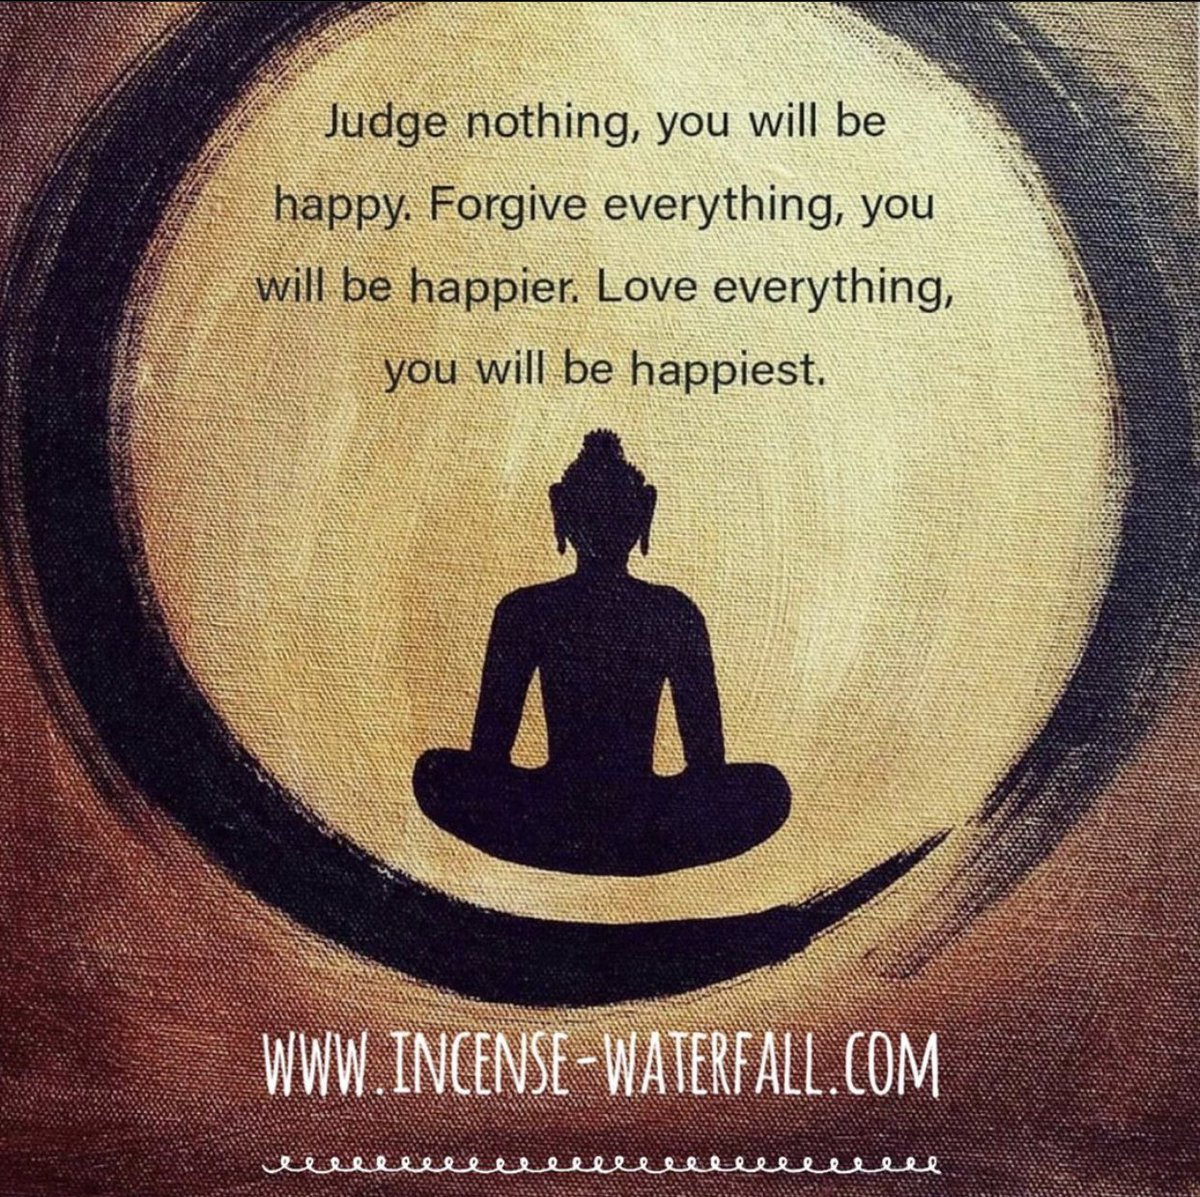 You will be happiest  . For a limited time there is discount on all items including, incense burners, waterfalls and cones . . #meditation #yoga #love #mindfulness #spirituality #healing #spiritual #peace #selflove #nature #selfcare #wellness #inspirationpic.twitter.com/kuSYFjQEh5